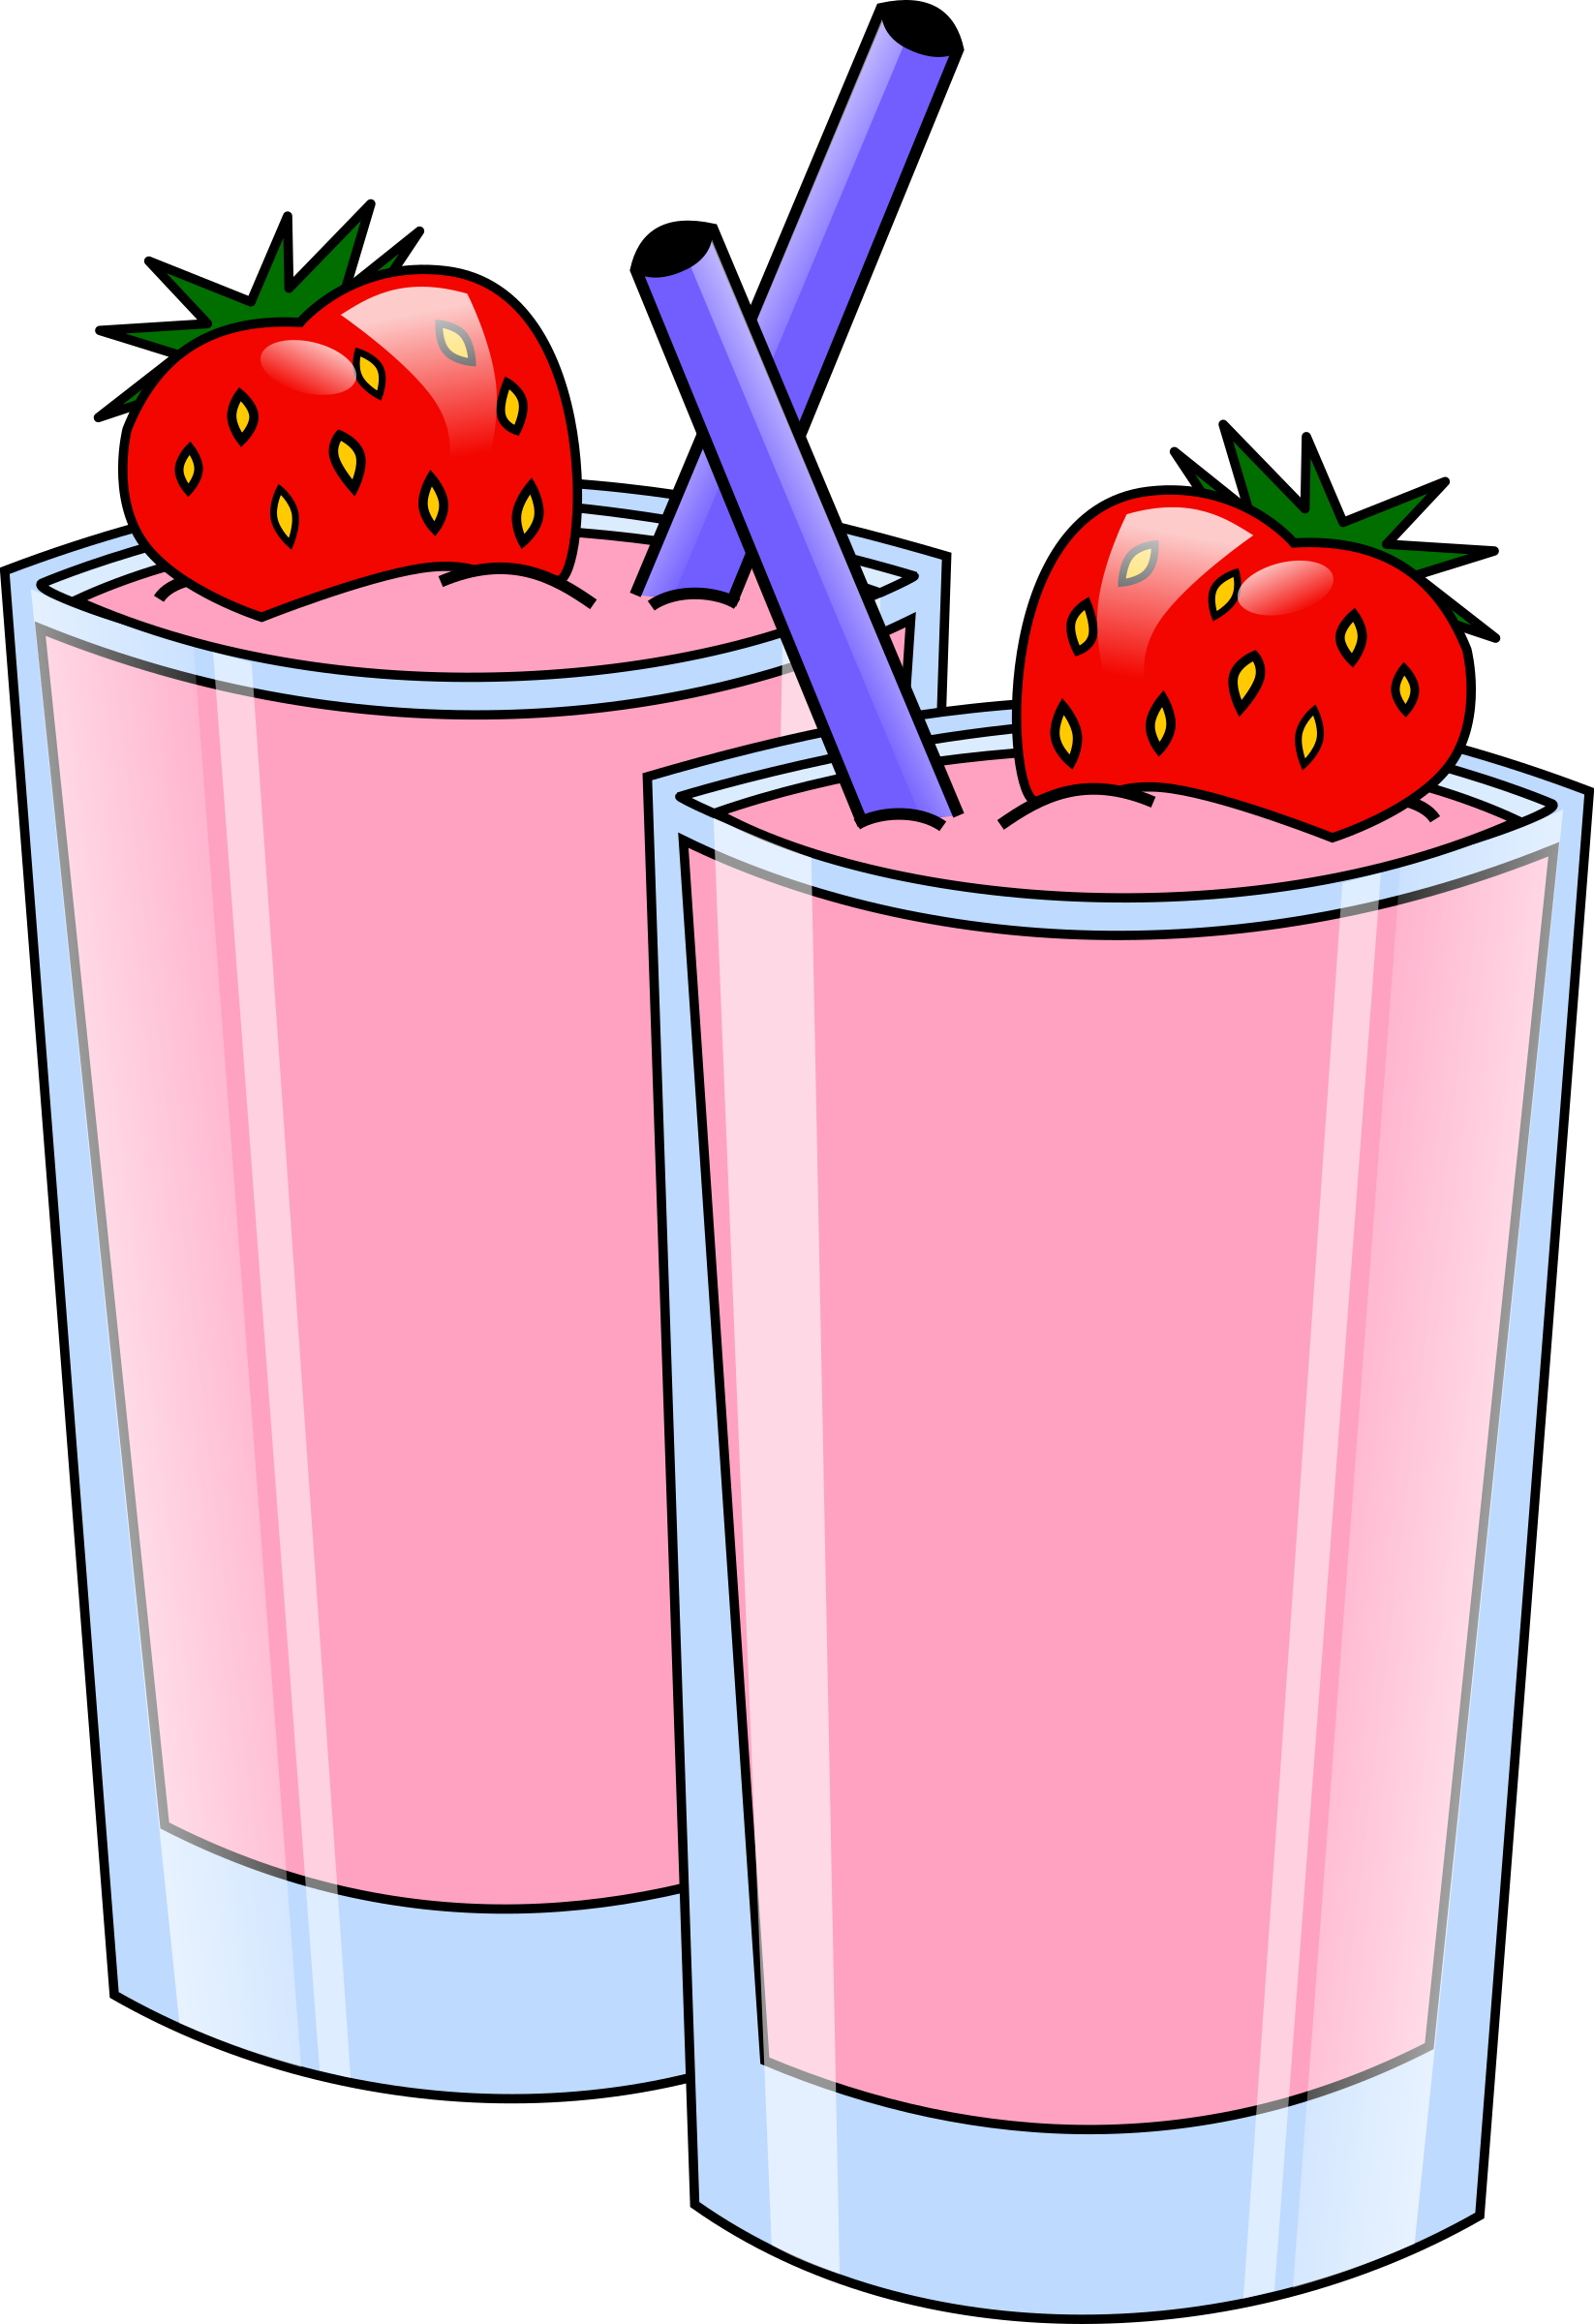 Smoothie clipart nutrition Smoothie strawberry smoothie Clipart strawberry